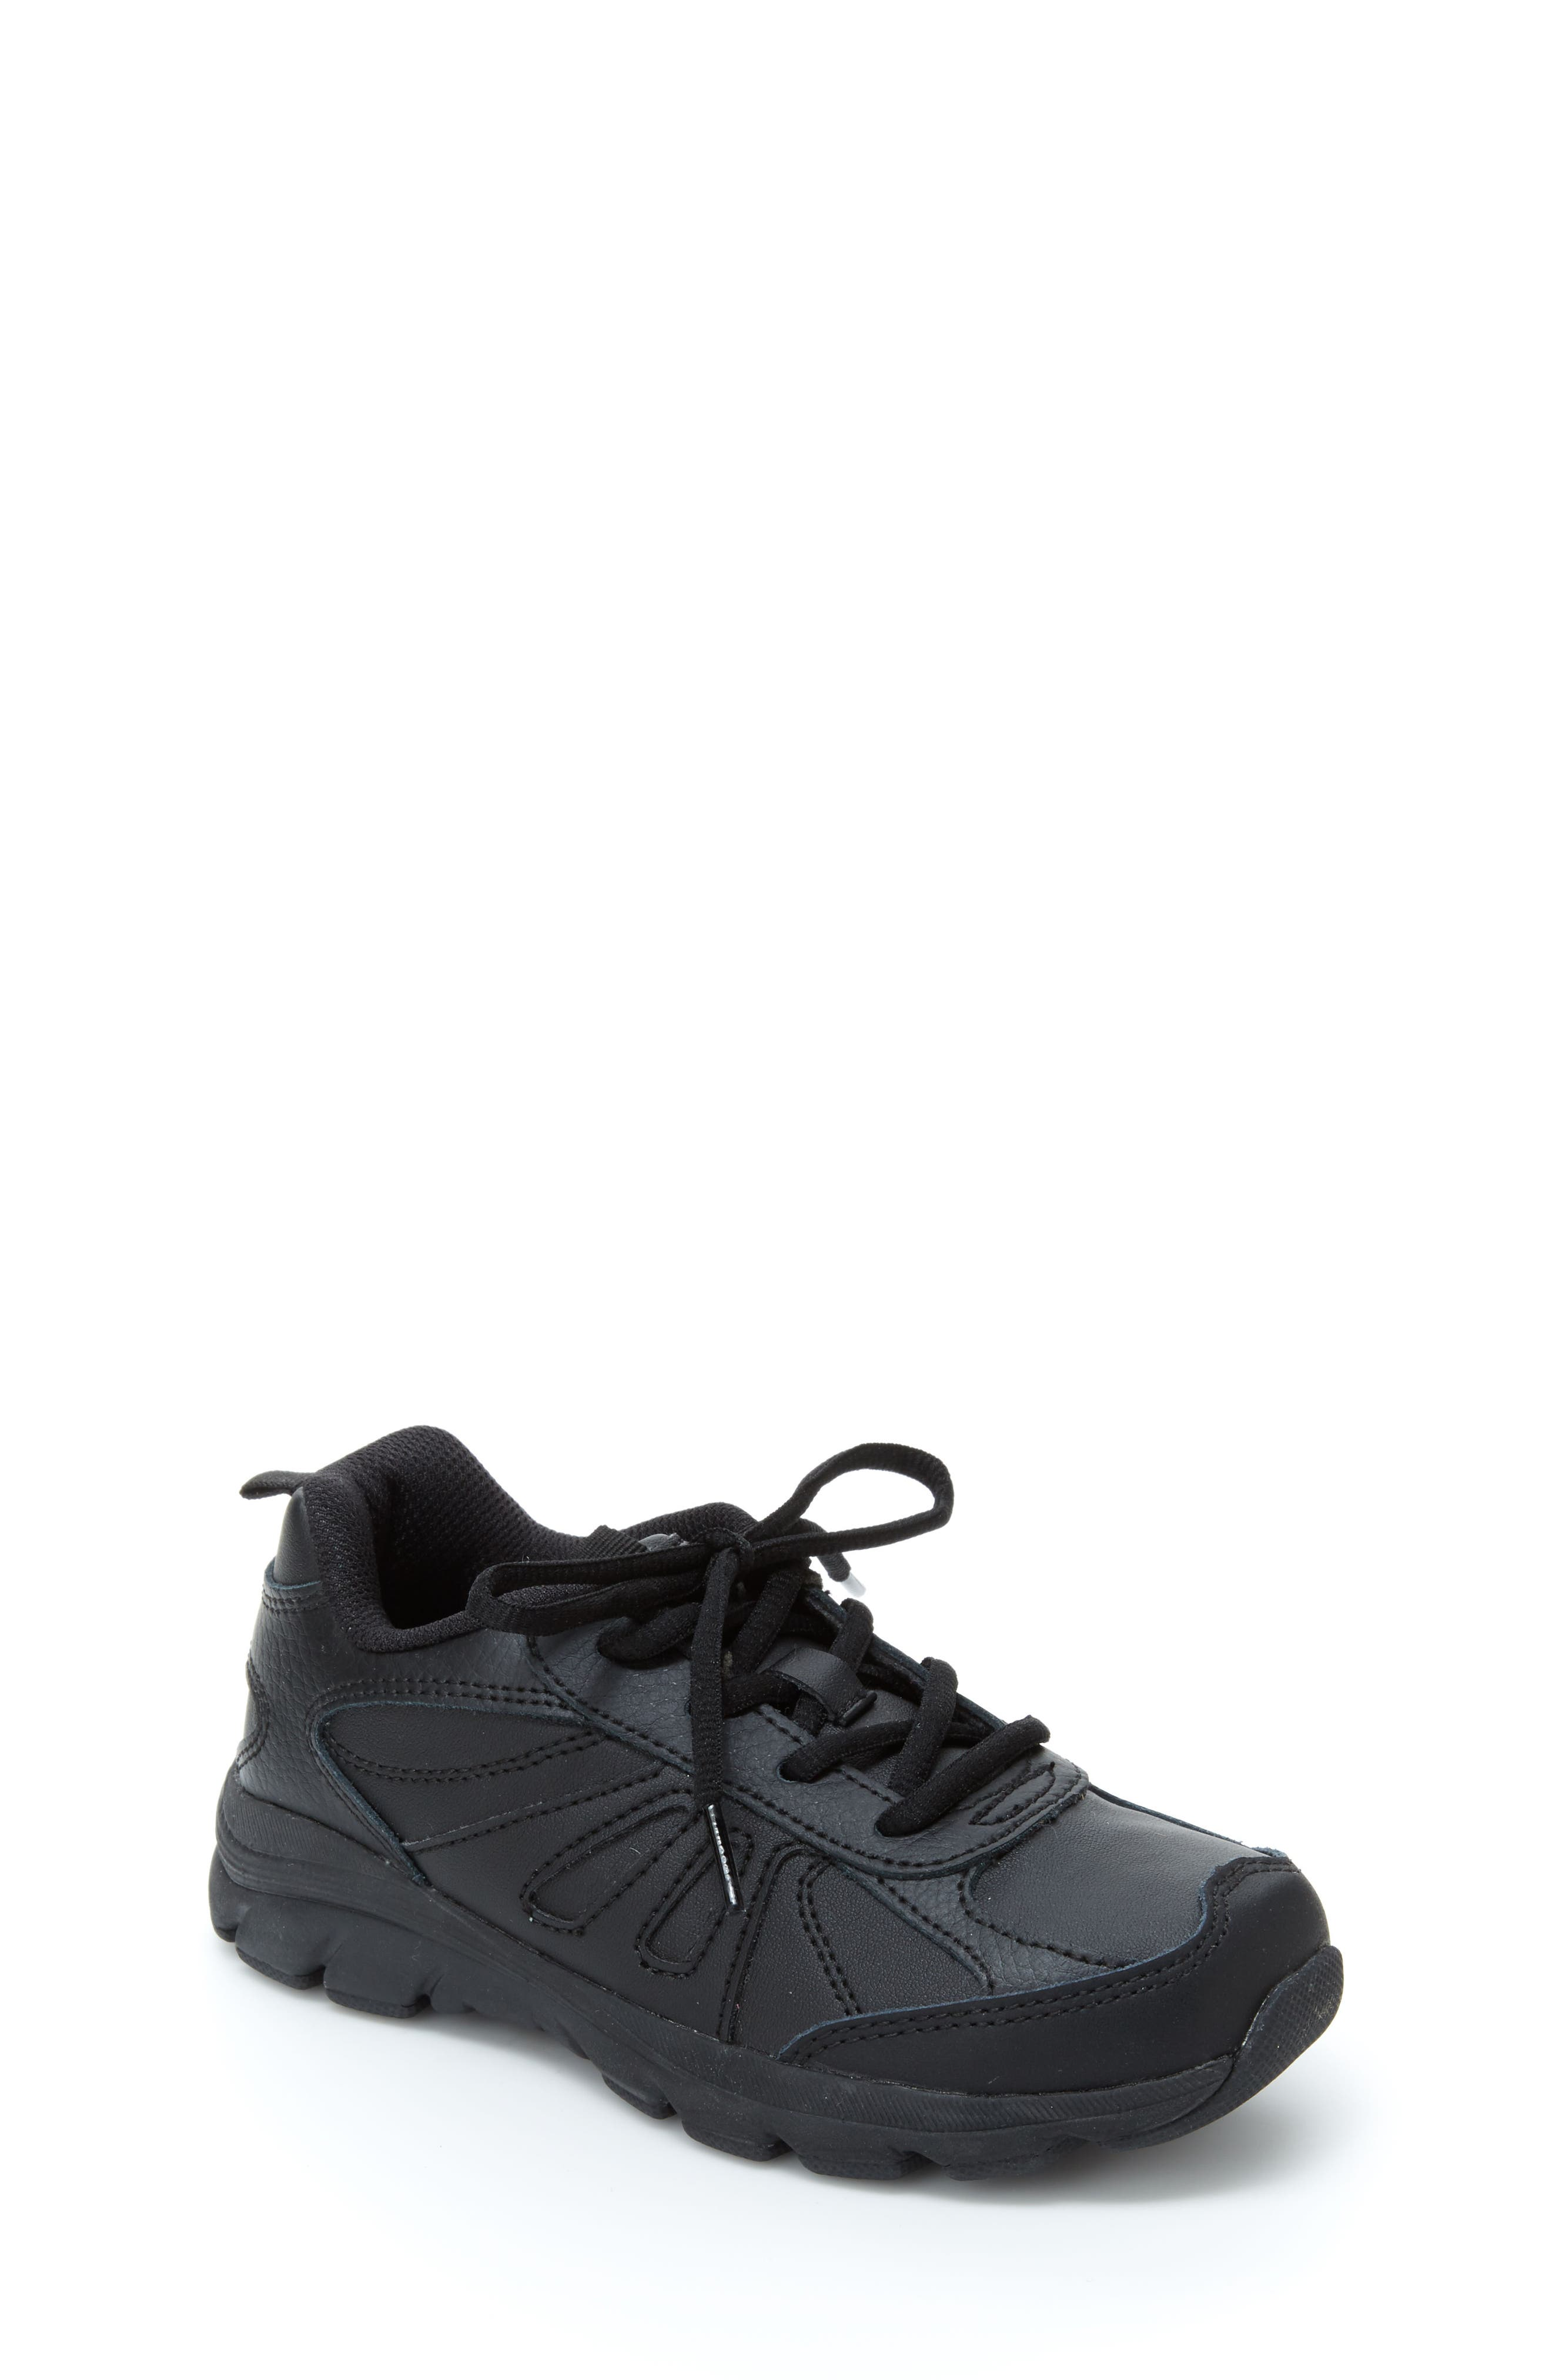 Cooper 2.0 Sneaker,                         Main,                         color, BLACK